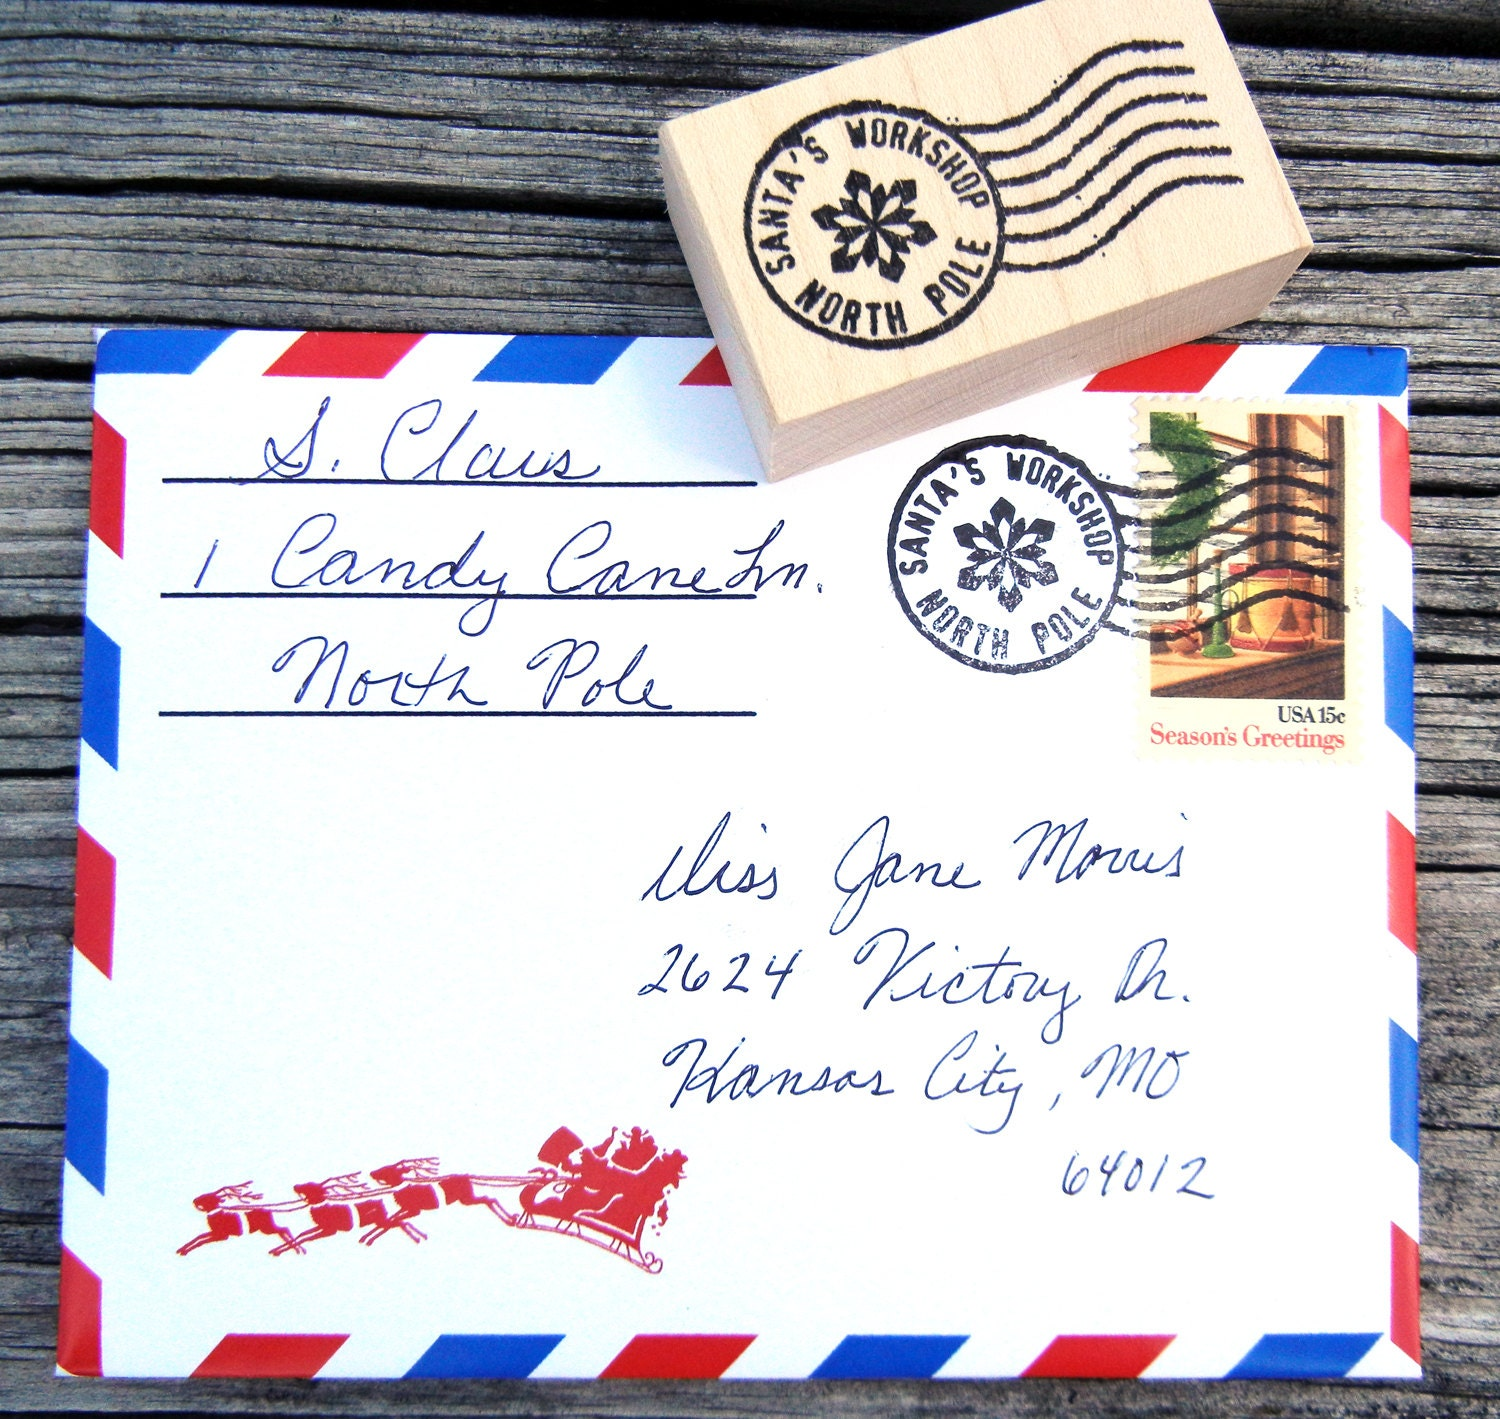 How to postmark a letter mersnoforum how to postmark a letter letter from santa spiritdancerdesigns Choice Image